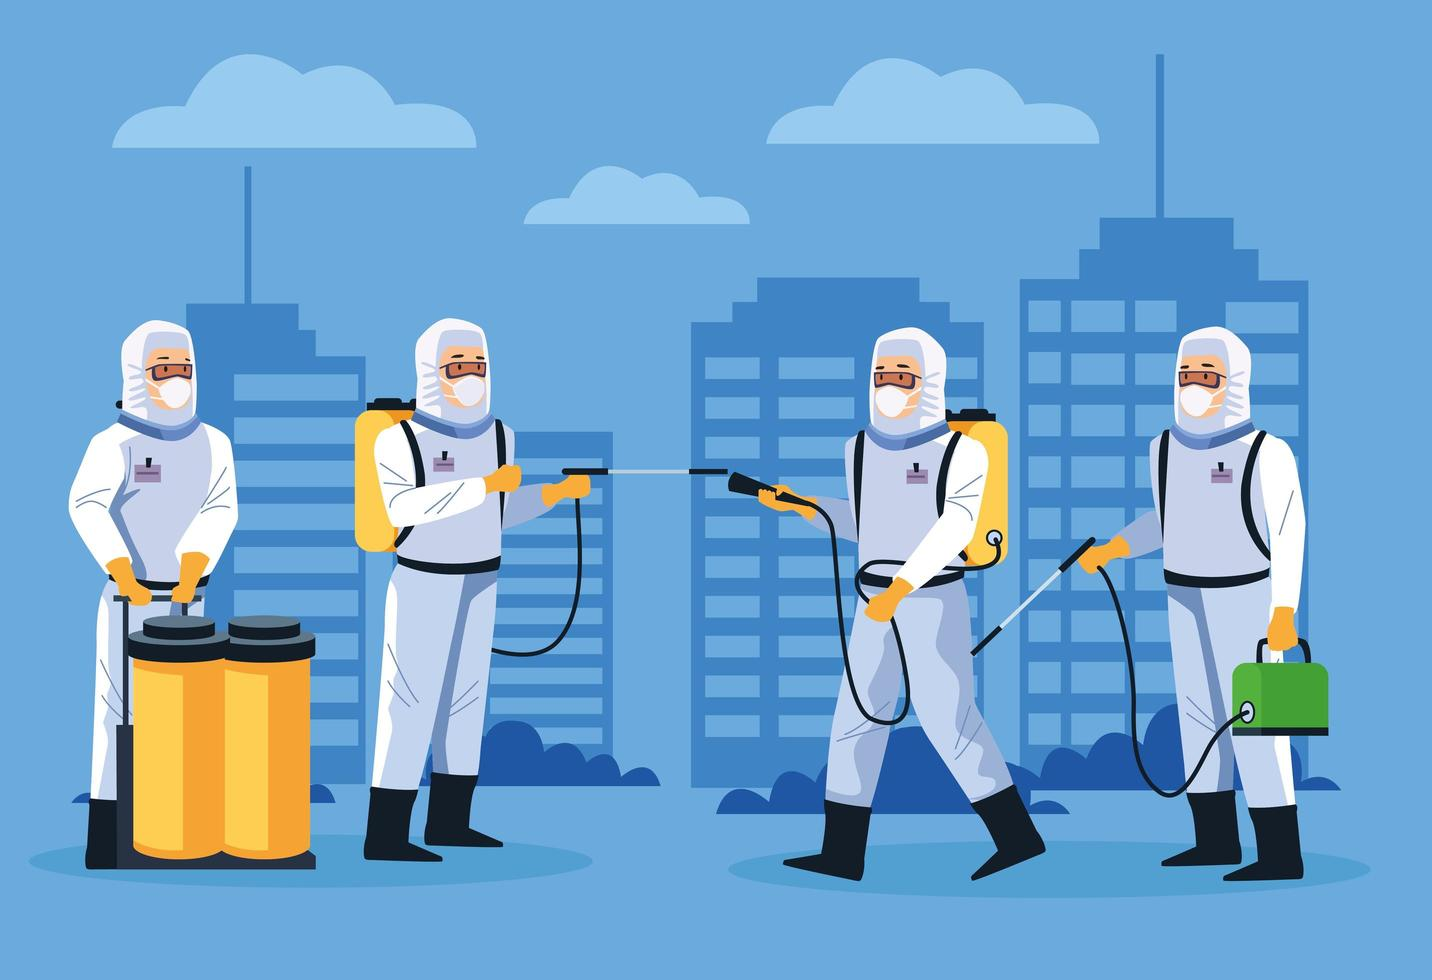 Biosafety workers disinfect street against COVID 19 vector